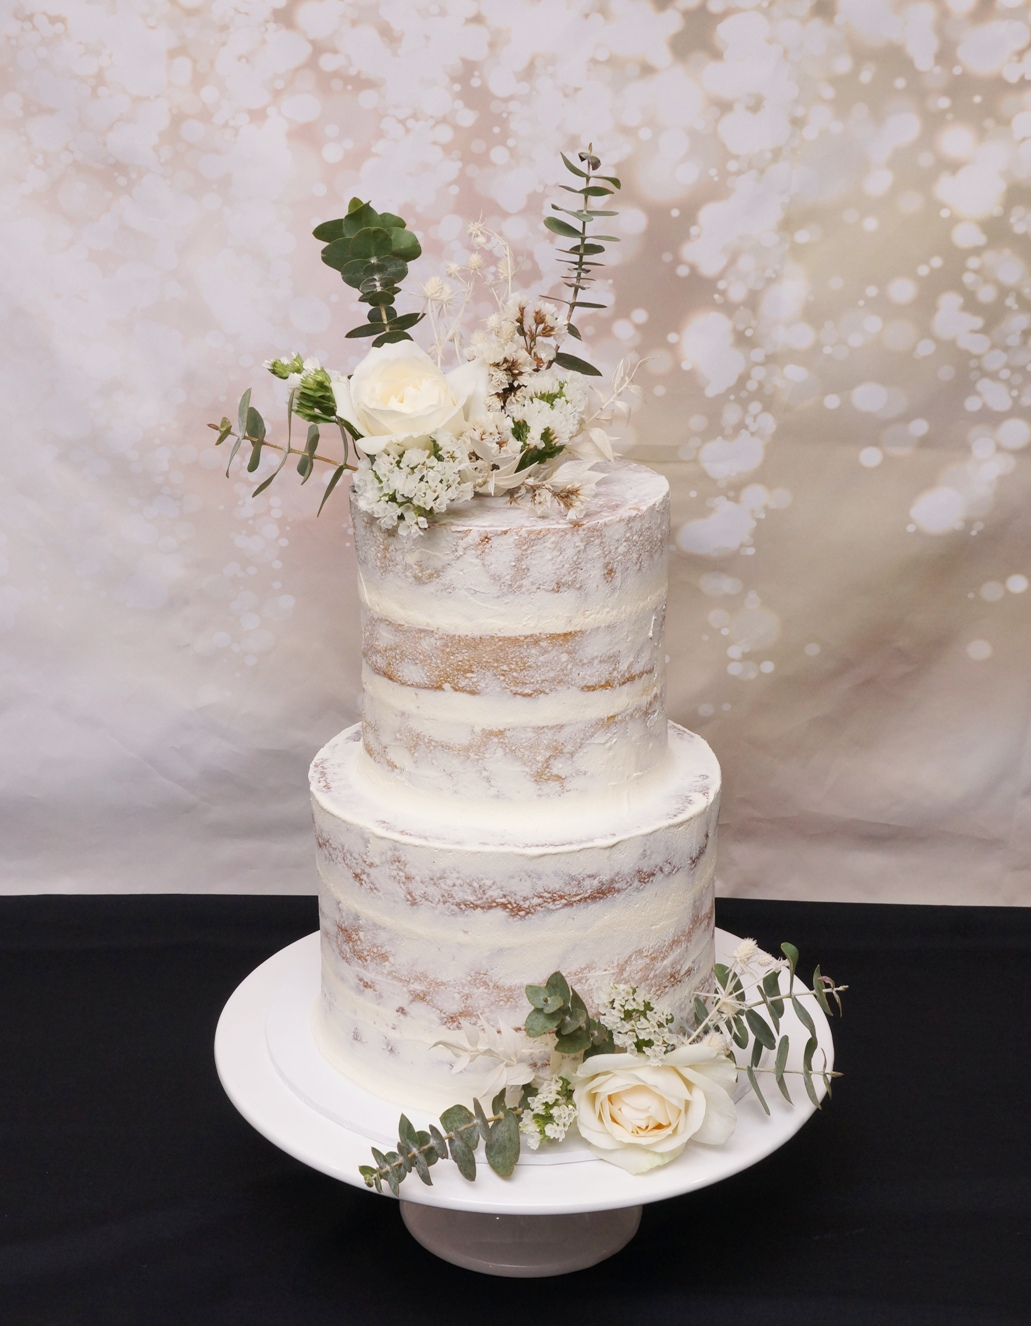 2 Tier Semi Naked with fresh White flowe